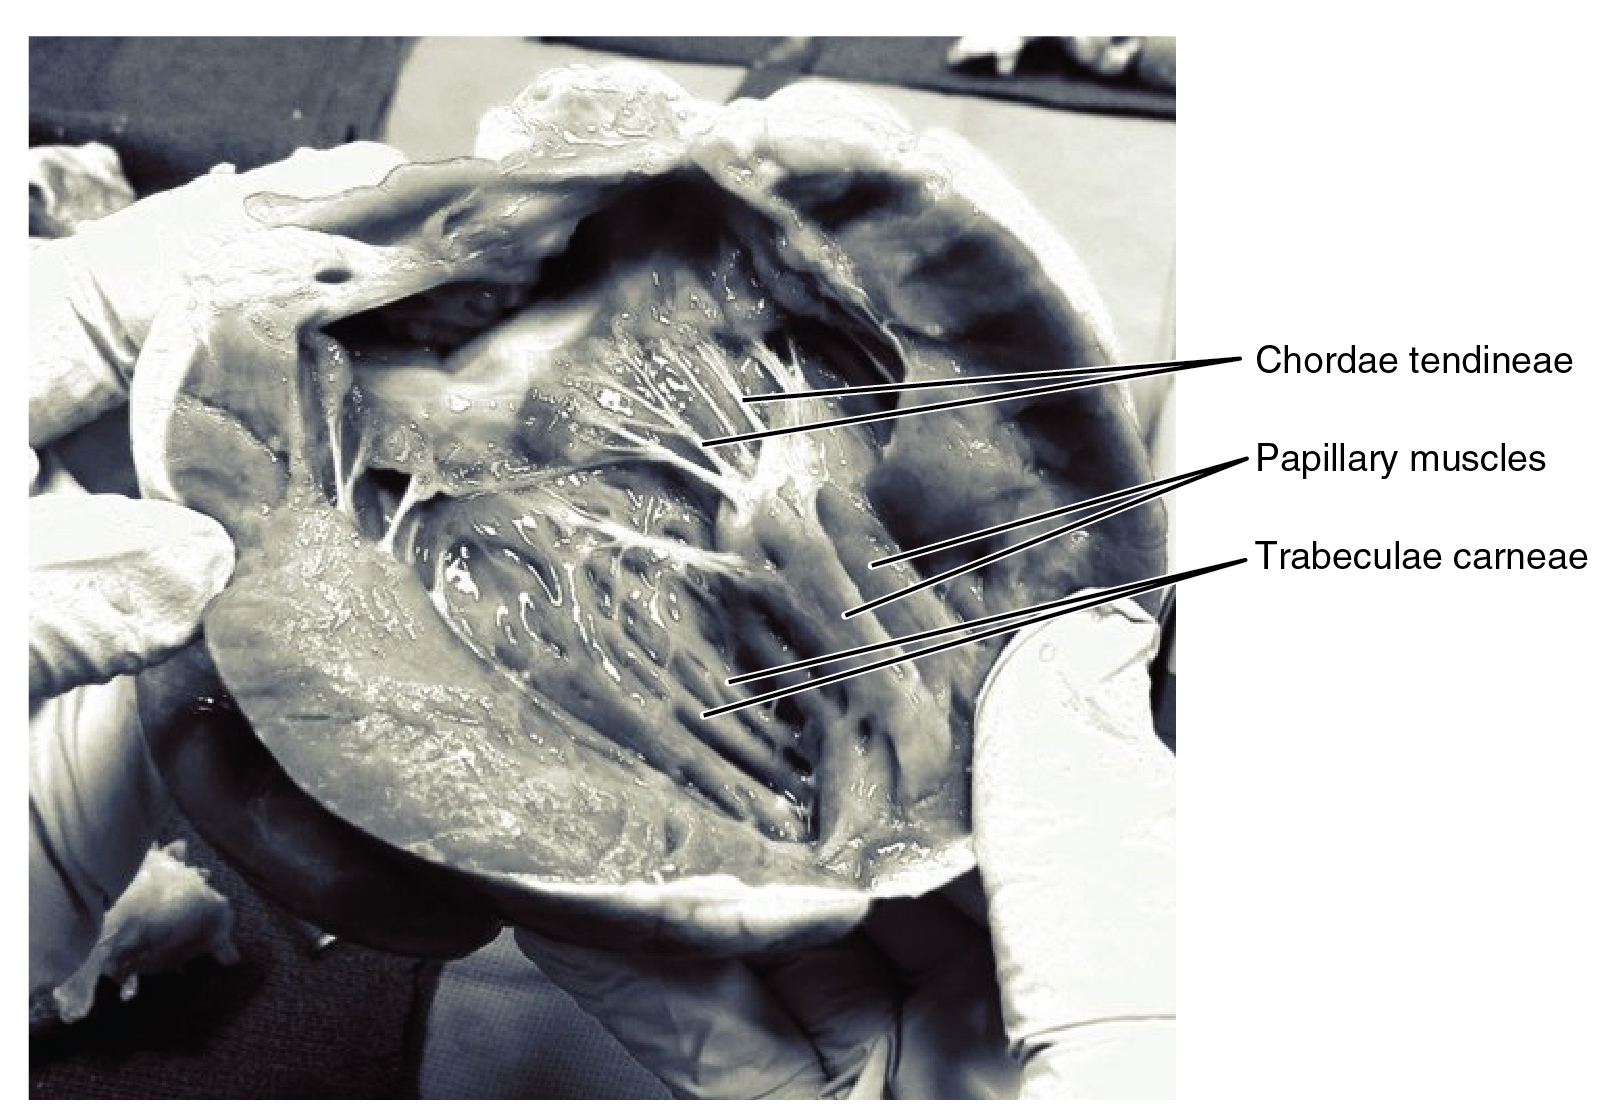 This photo shows the inside of the heart with the main muscles labeled.